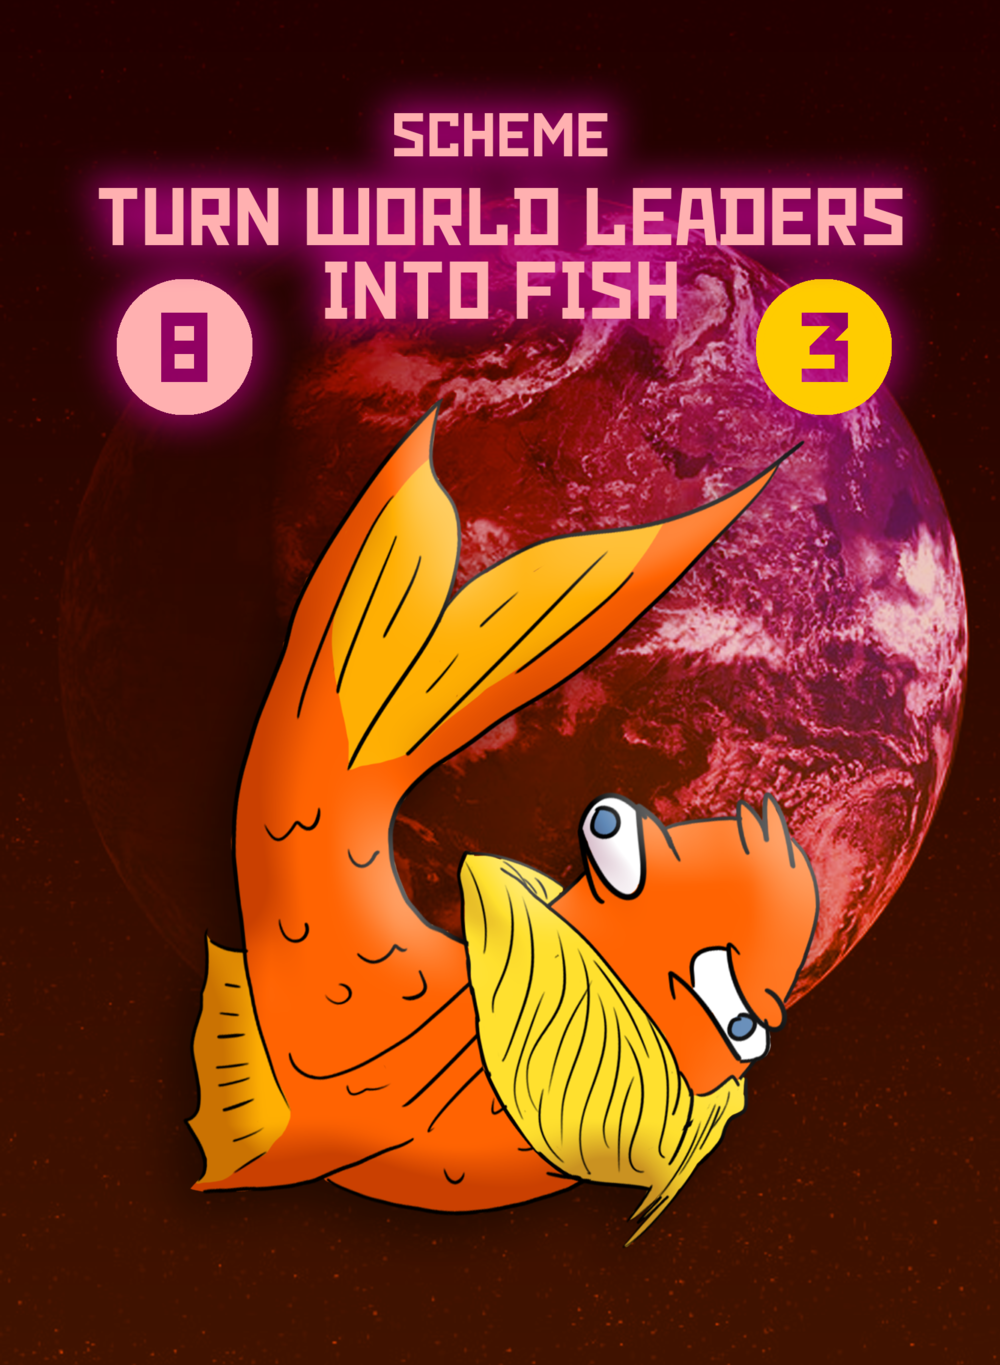 dastardly-scheme-turn world leaders into fish.png